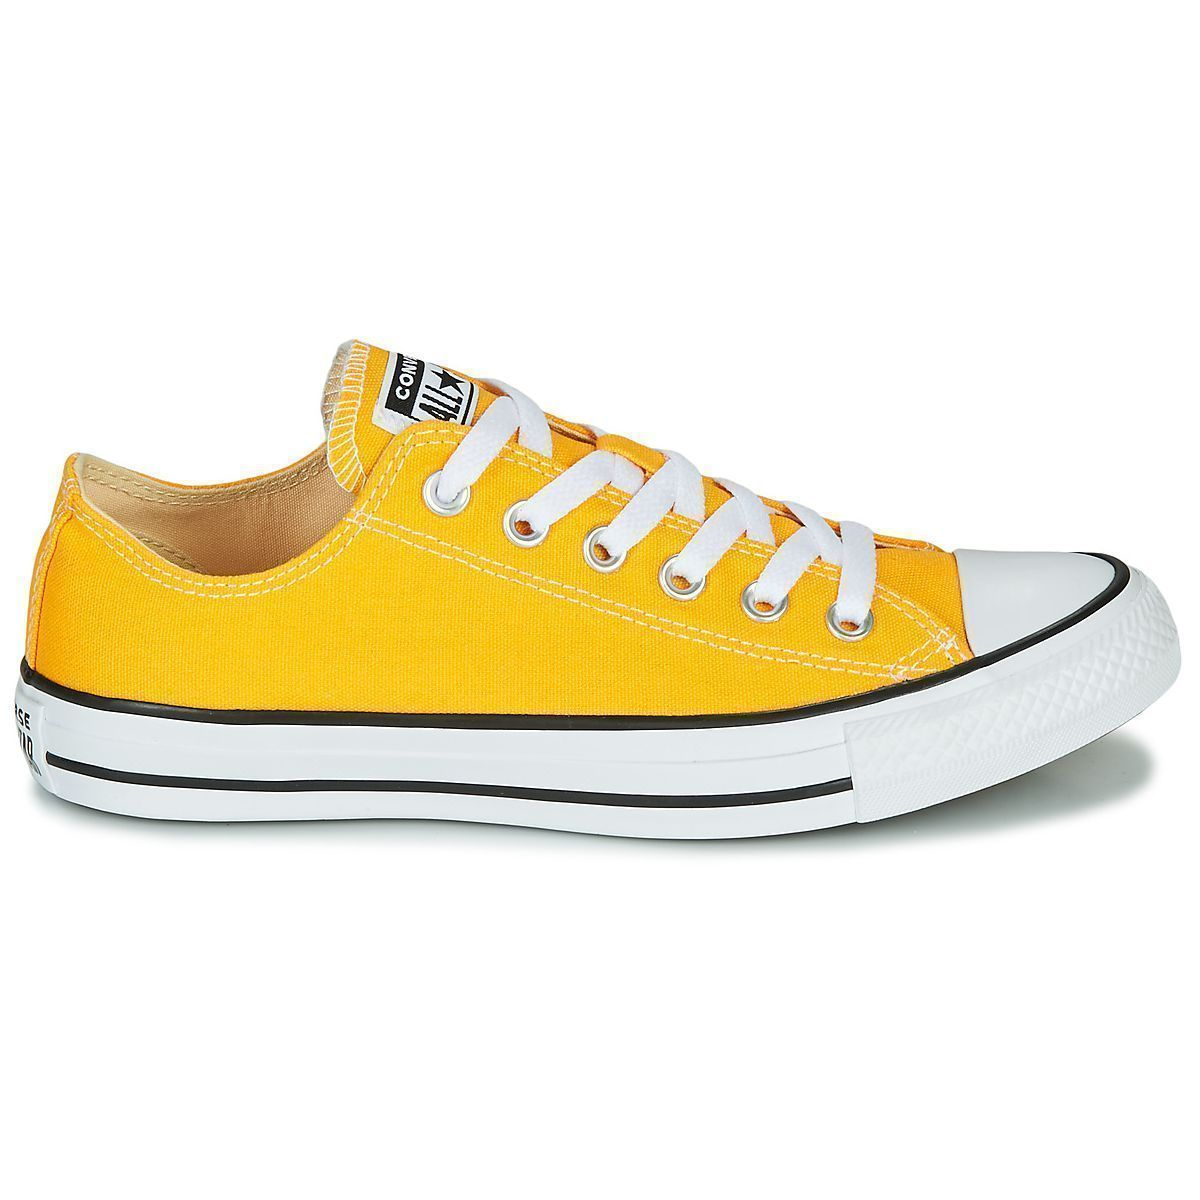 THRILL CTAS ALL STAR OX SEASONAL:JAUNE/TOILE/TOILE/CAOUTCHOUC/Jaune